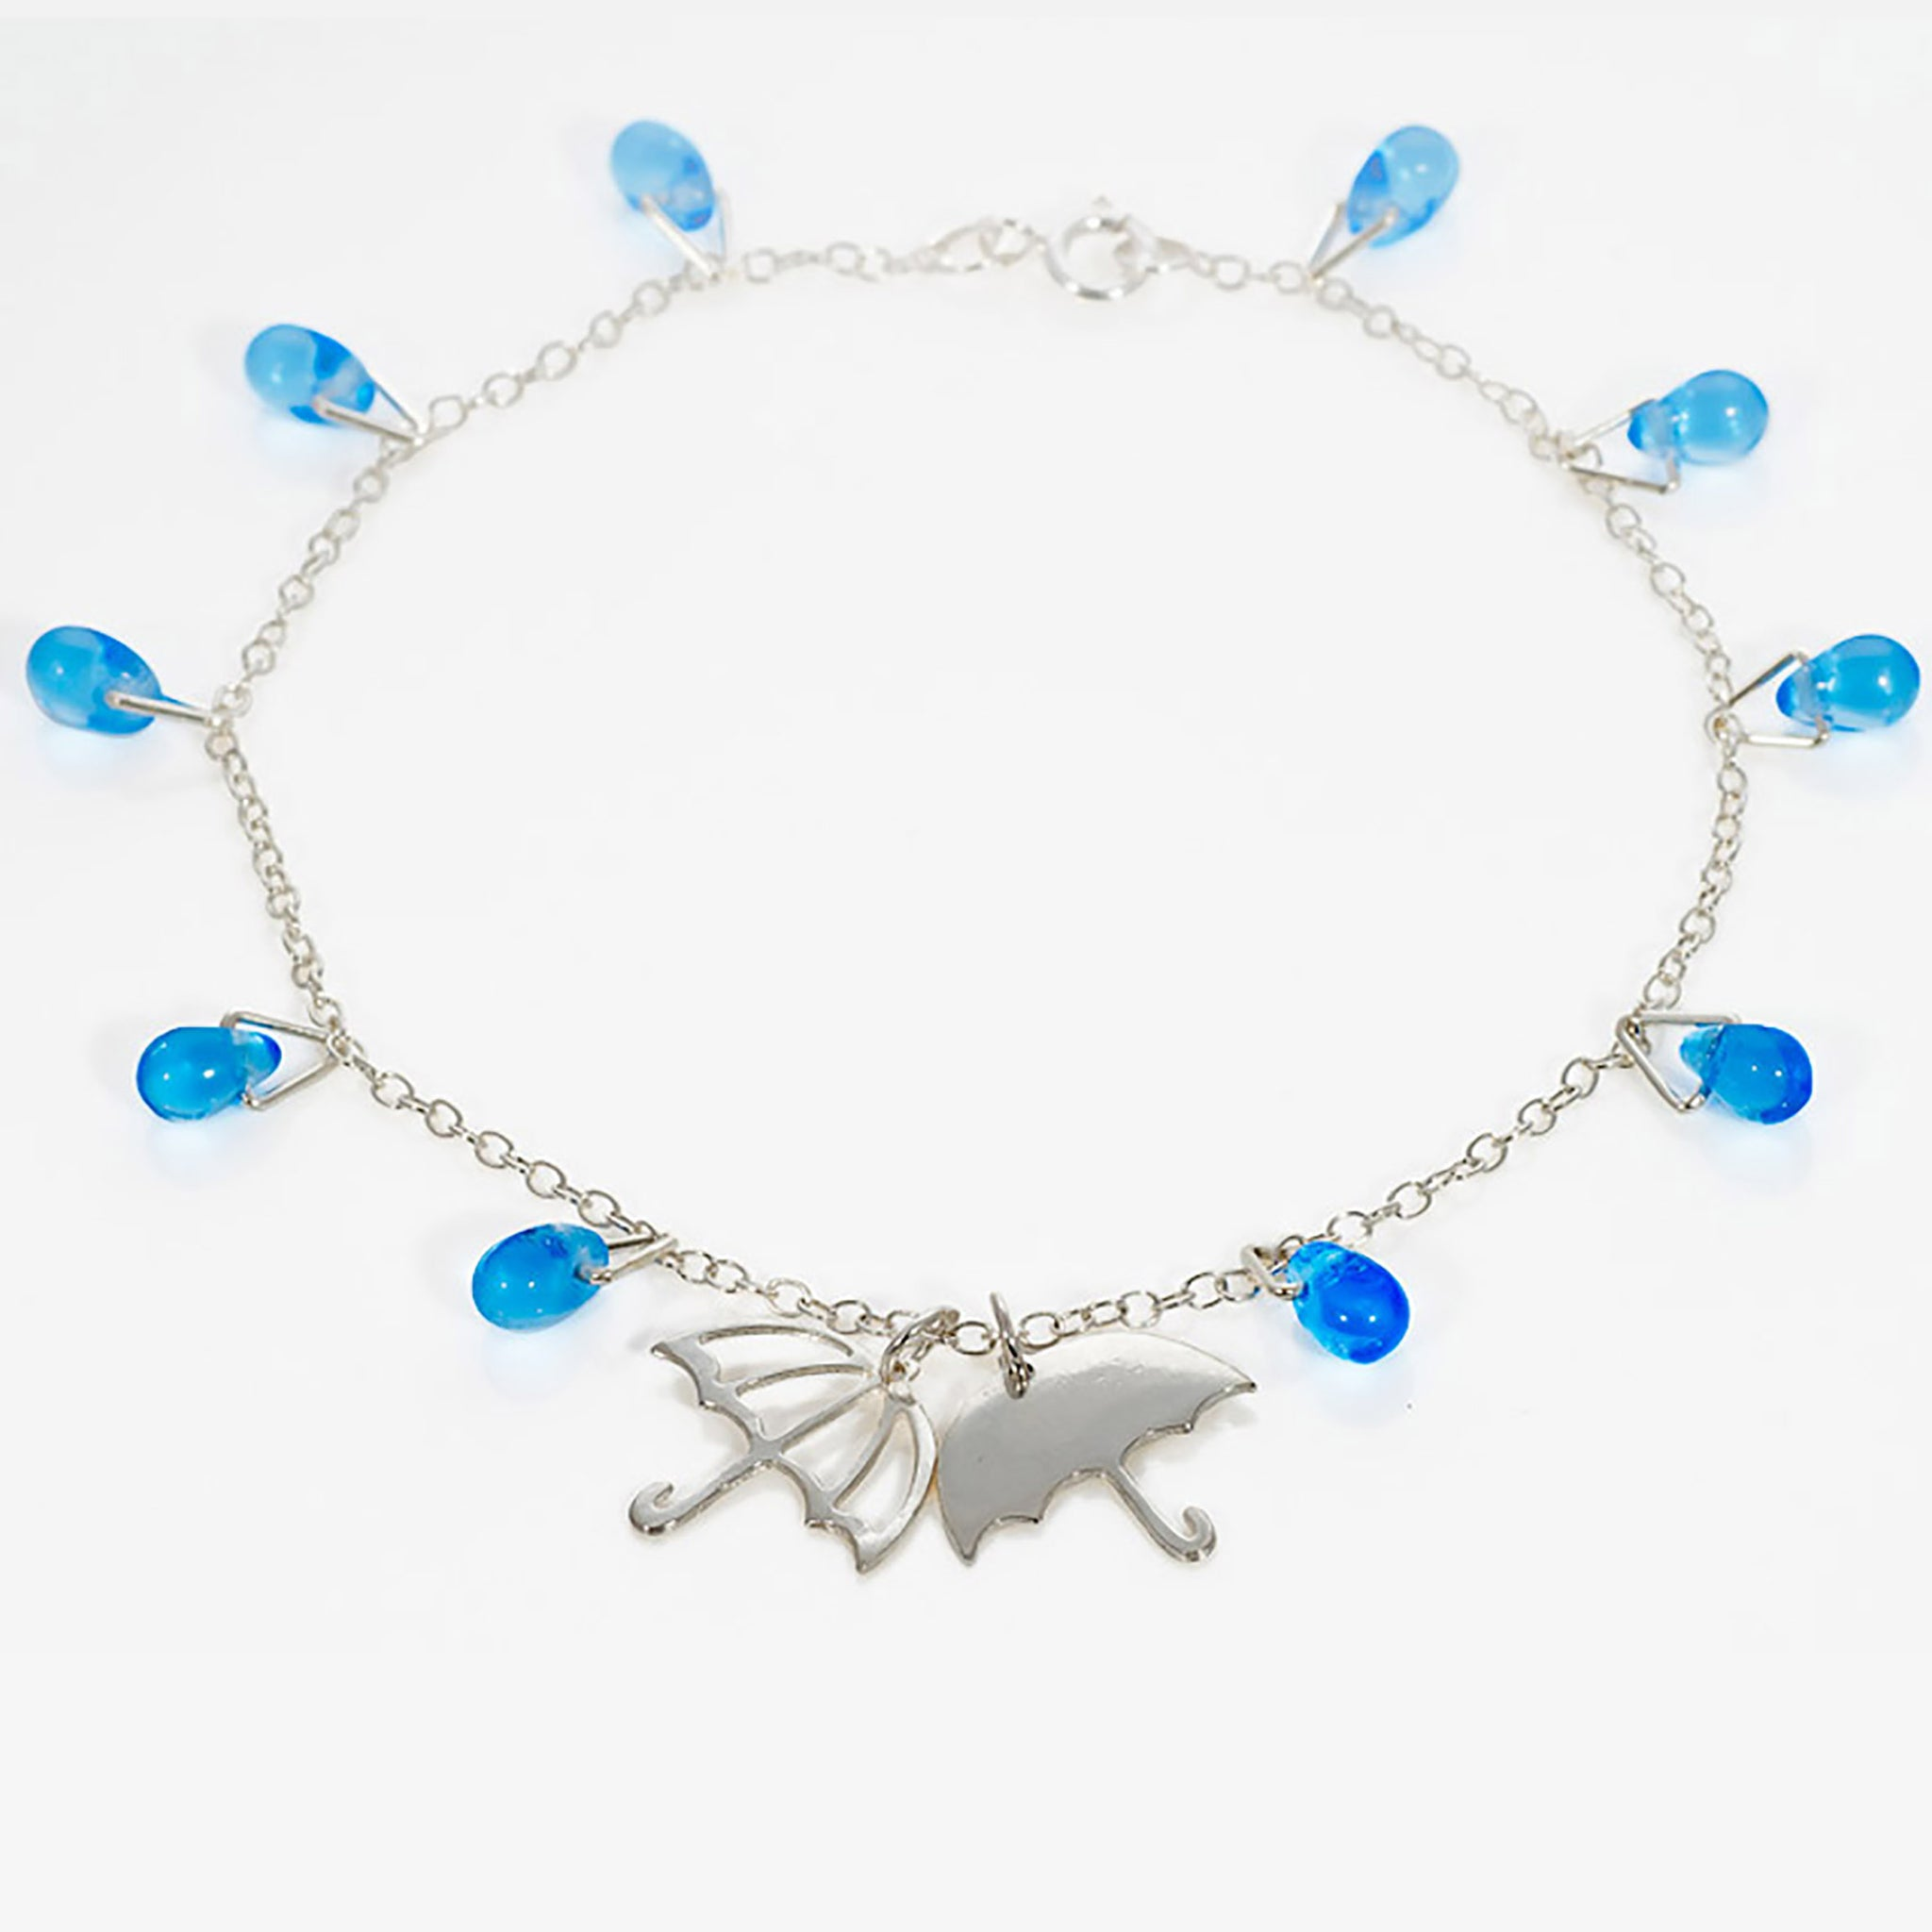 Umbrella in the Rain Bracelet